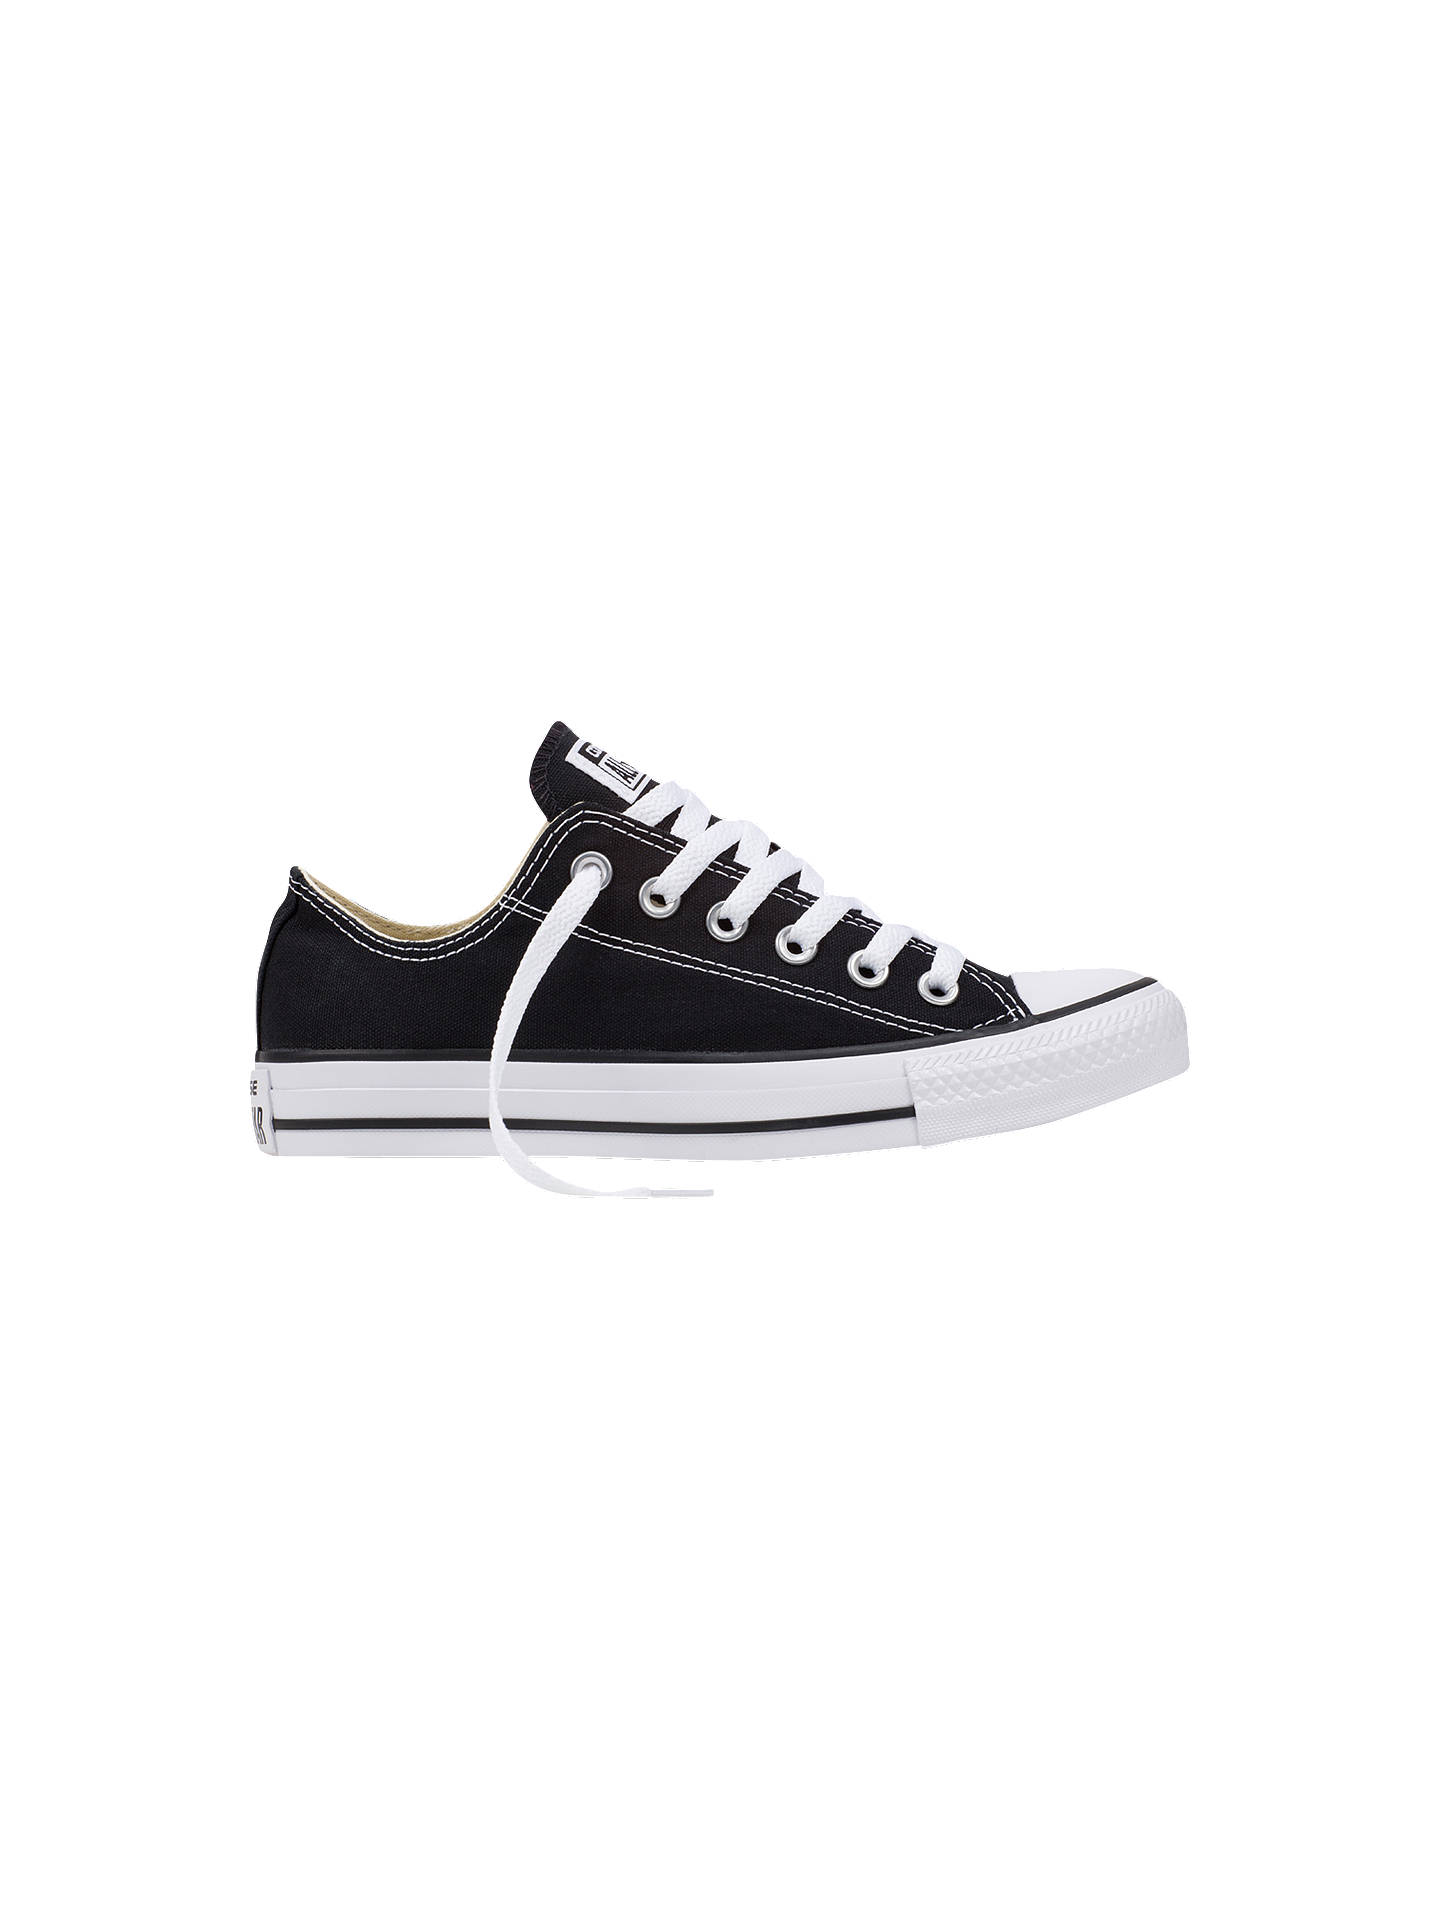 6d8fc73fdf11 Converse Chuck Taylor All Star Ox Trainers at John Lewis   Partners